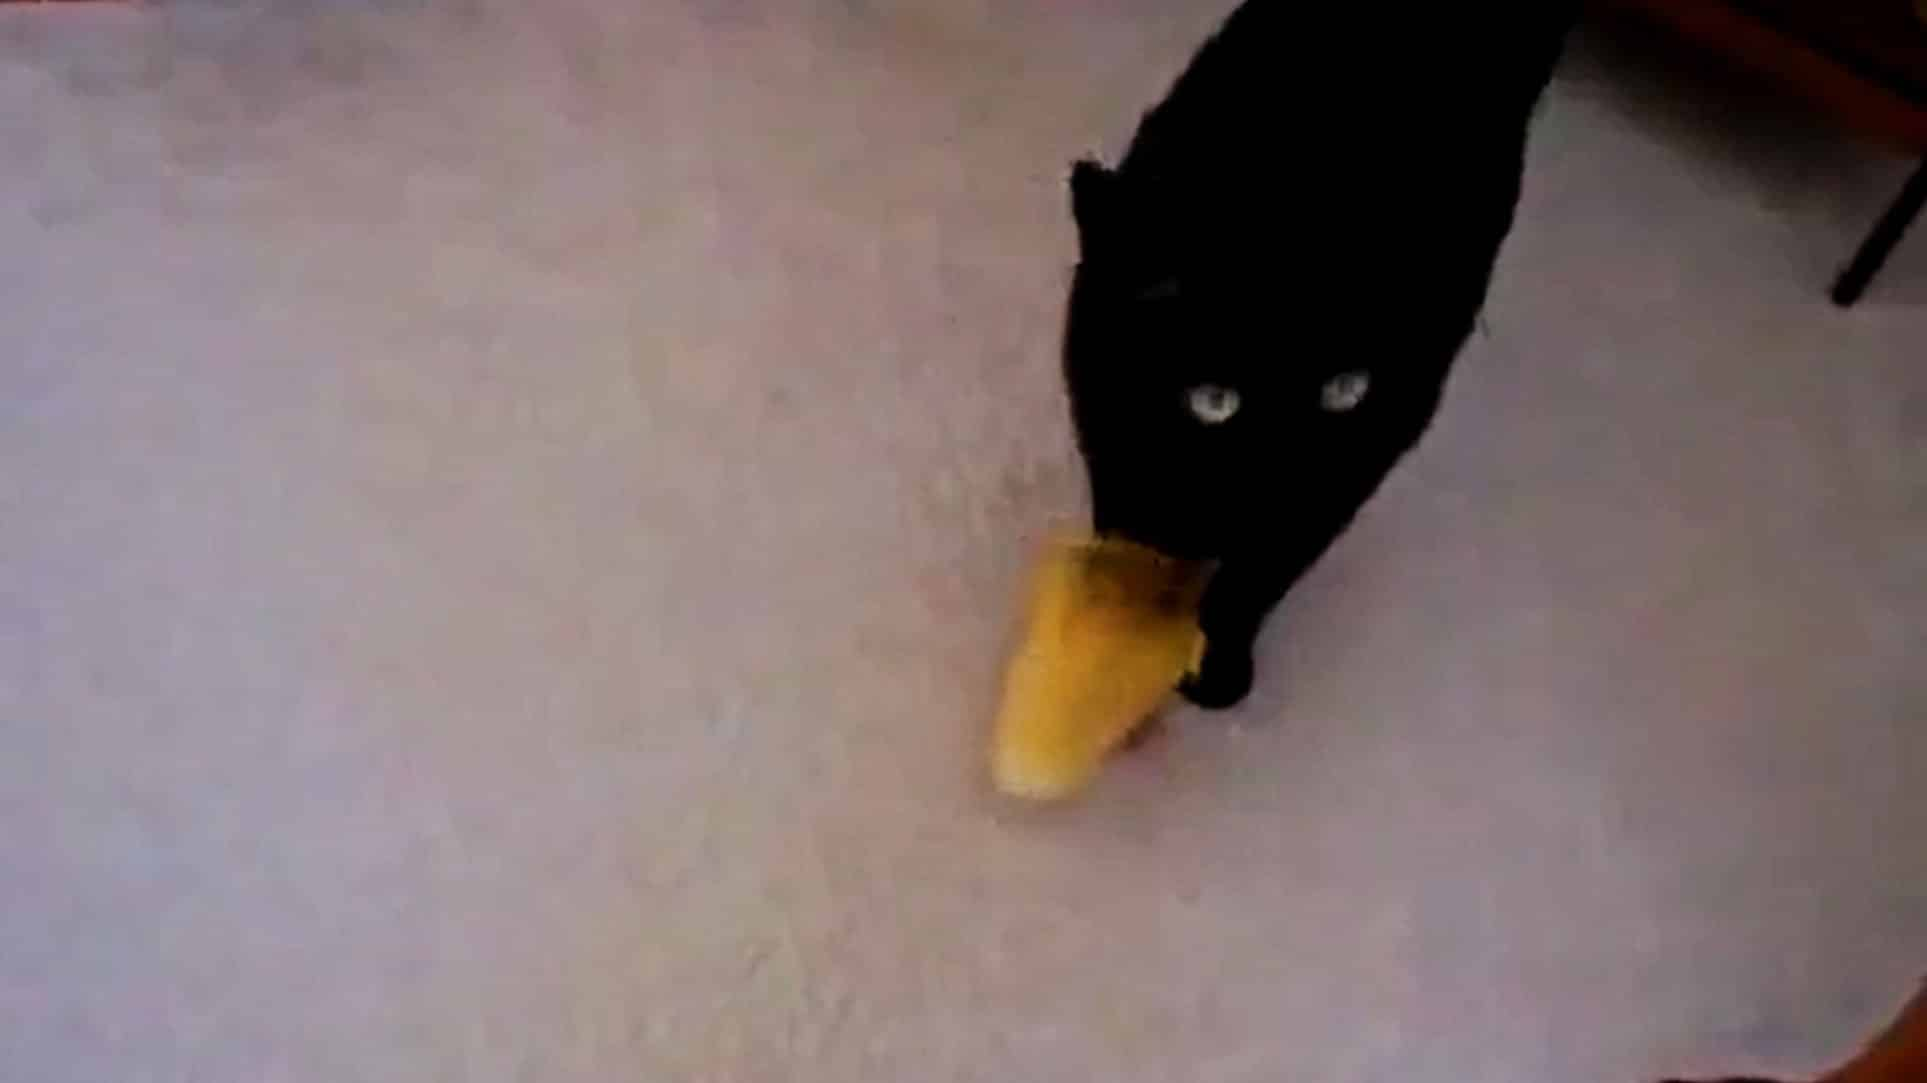 #Video Un pato bebé persigue a un gato negro 12